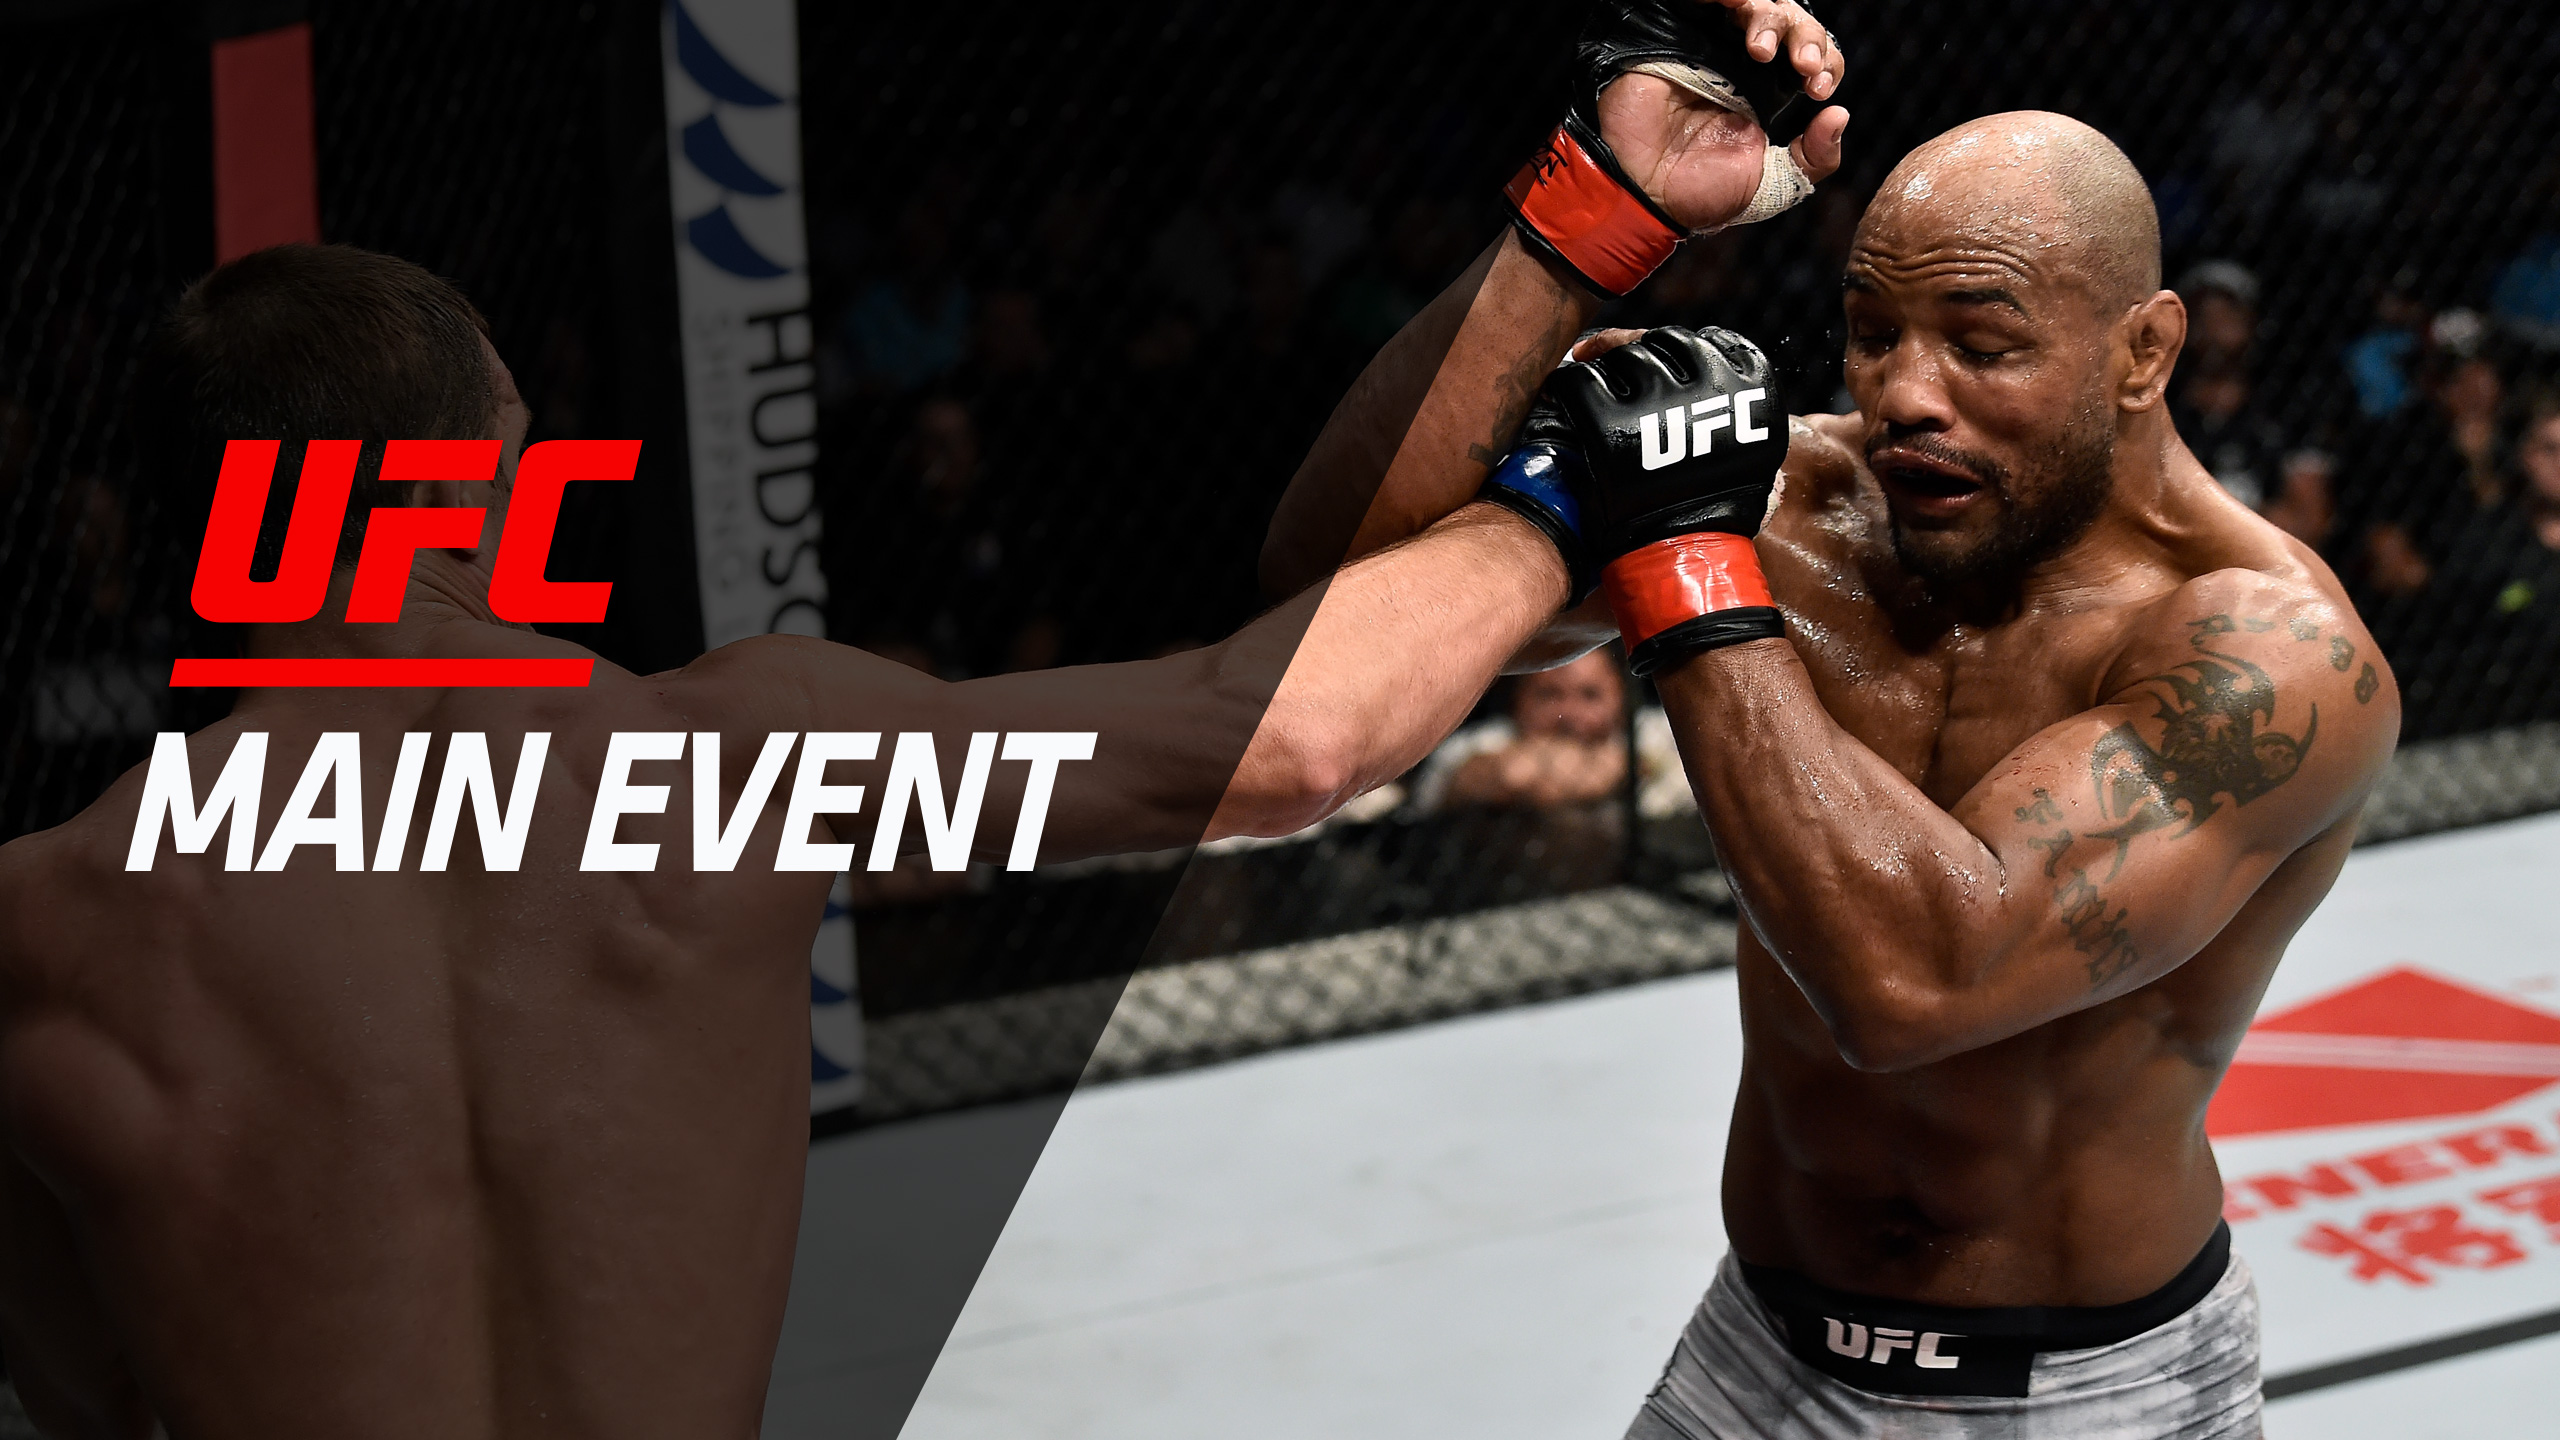 UFC Main Event: Romero vs. Rockhold